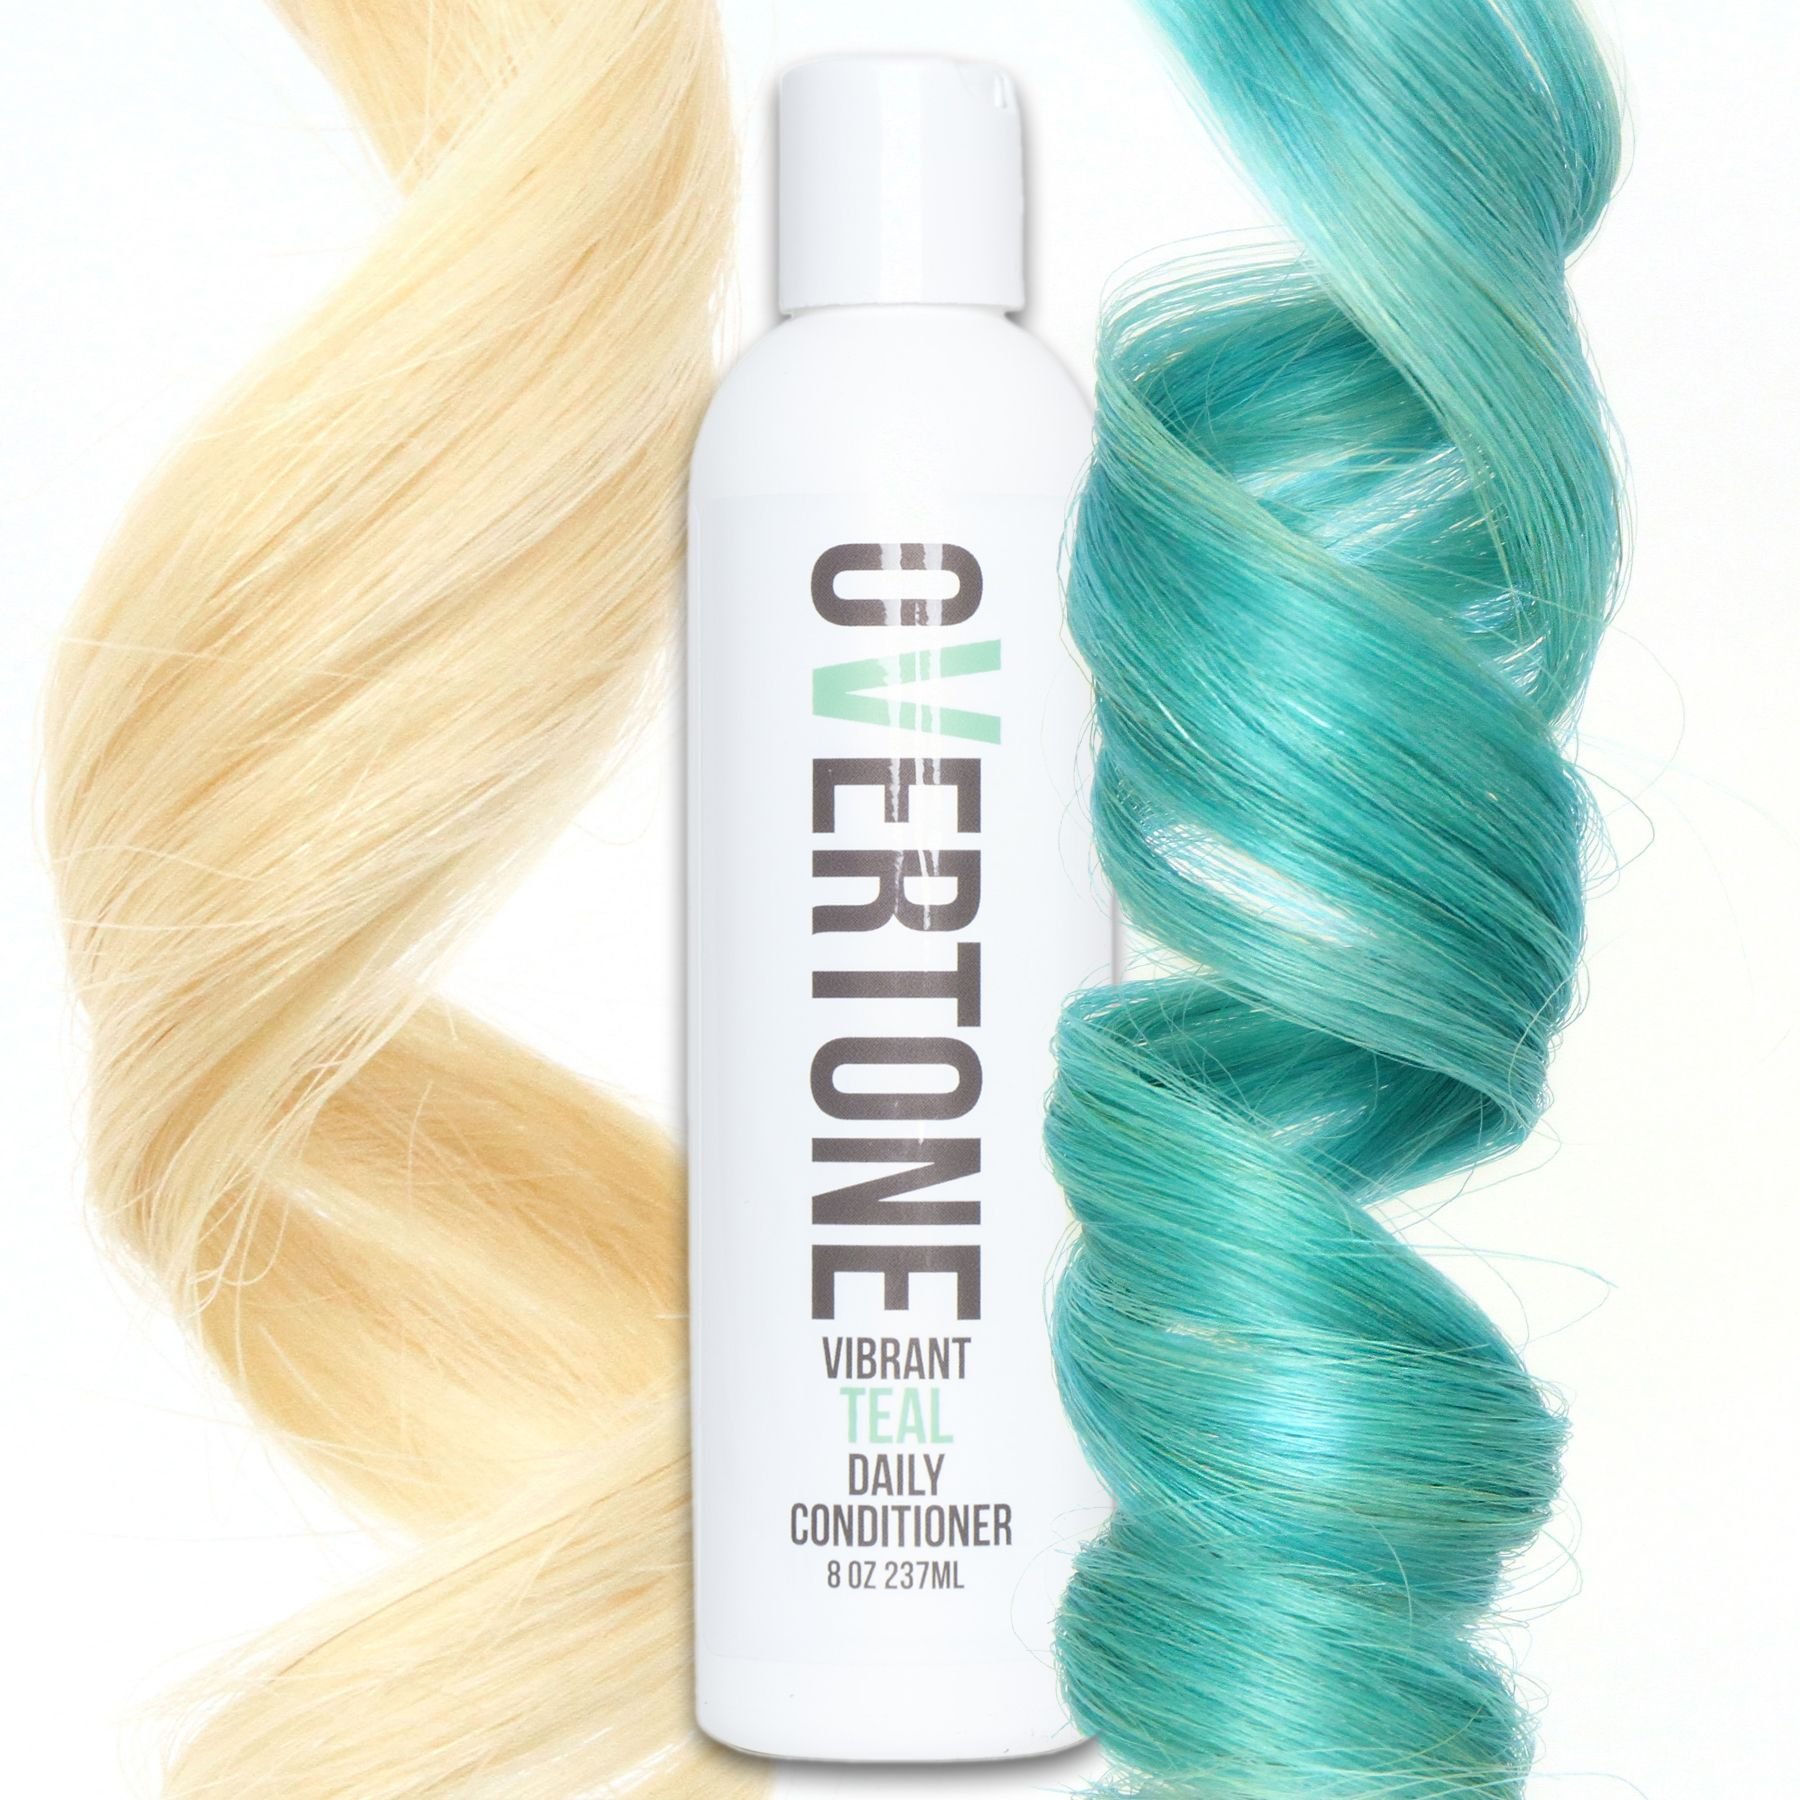 Overtone vibrant teal daily conditioner is a damagefree way to add